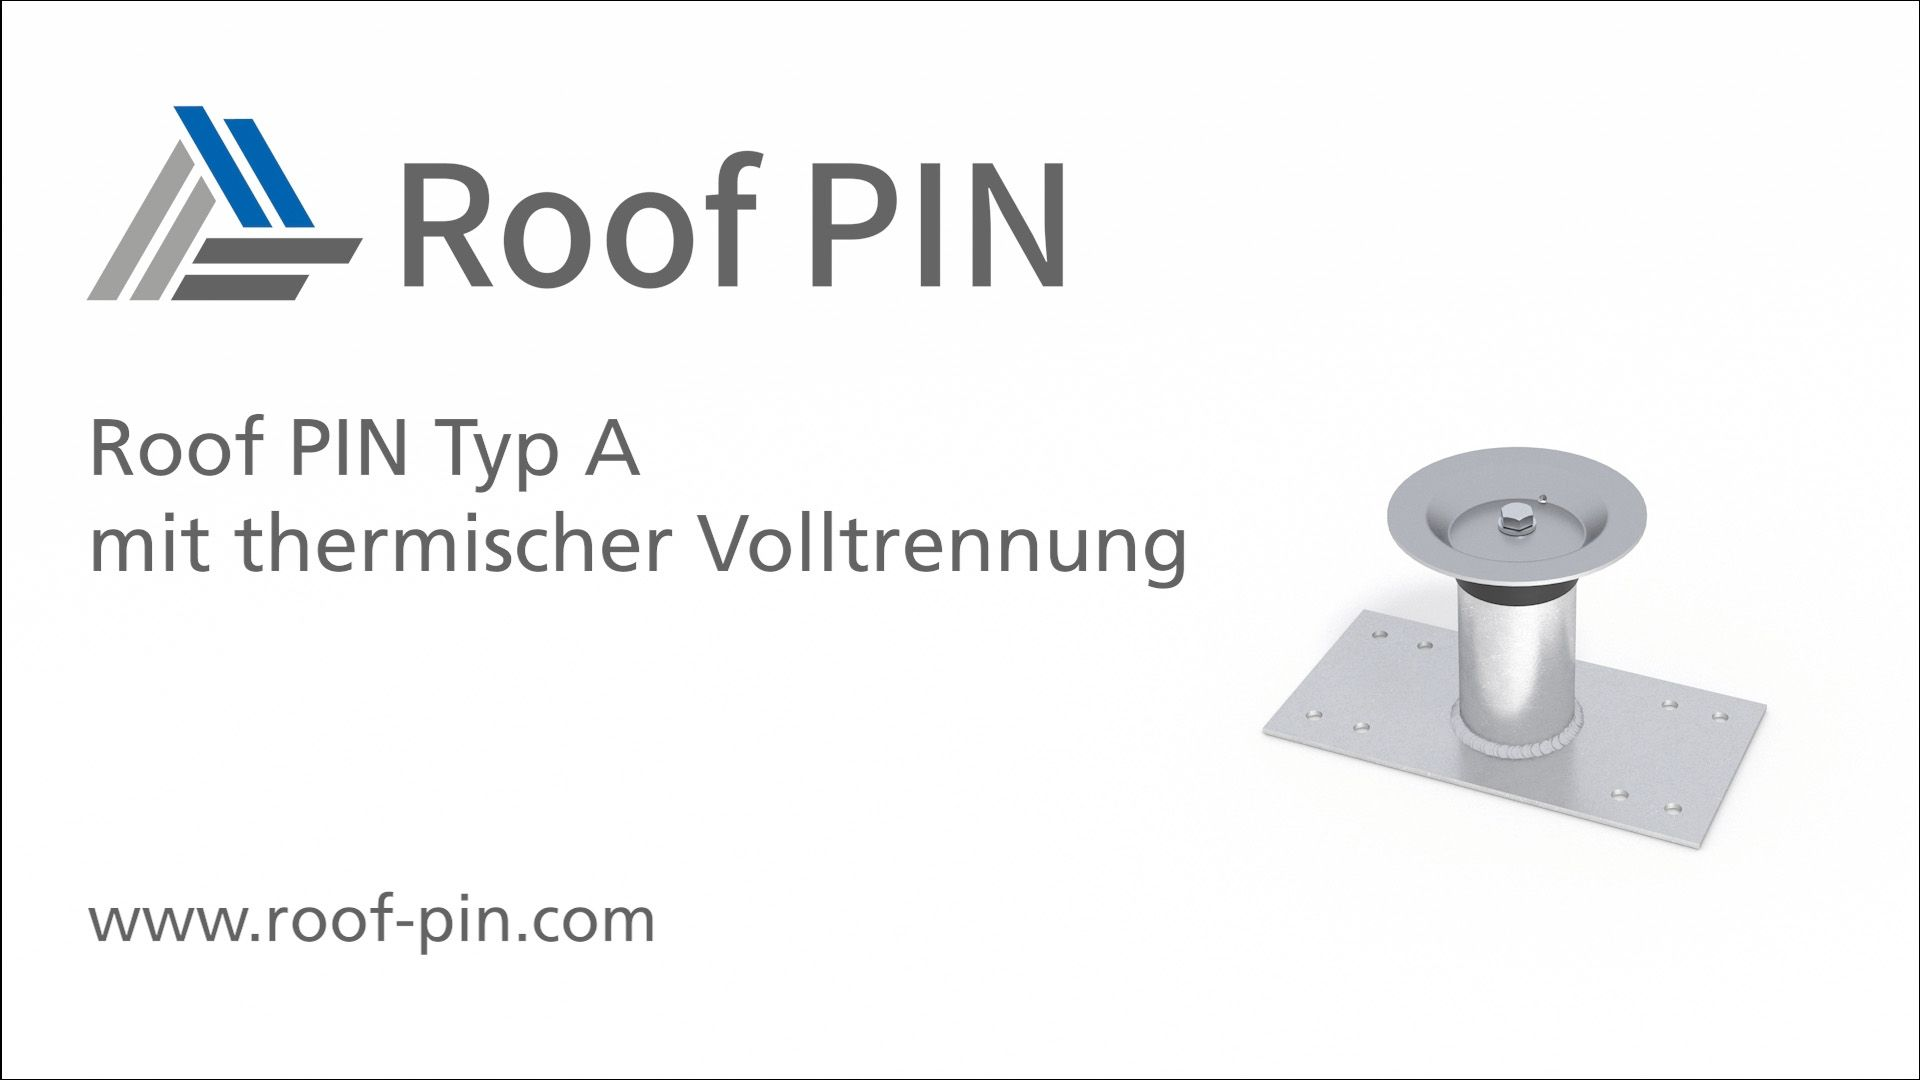 Video Roof-PIN Typ A